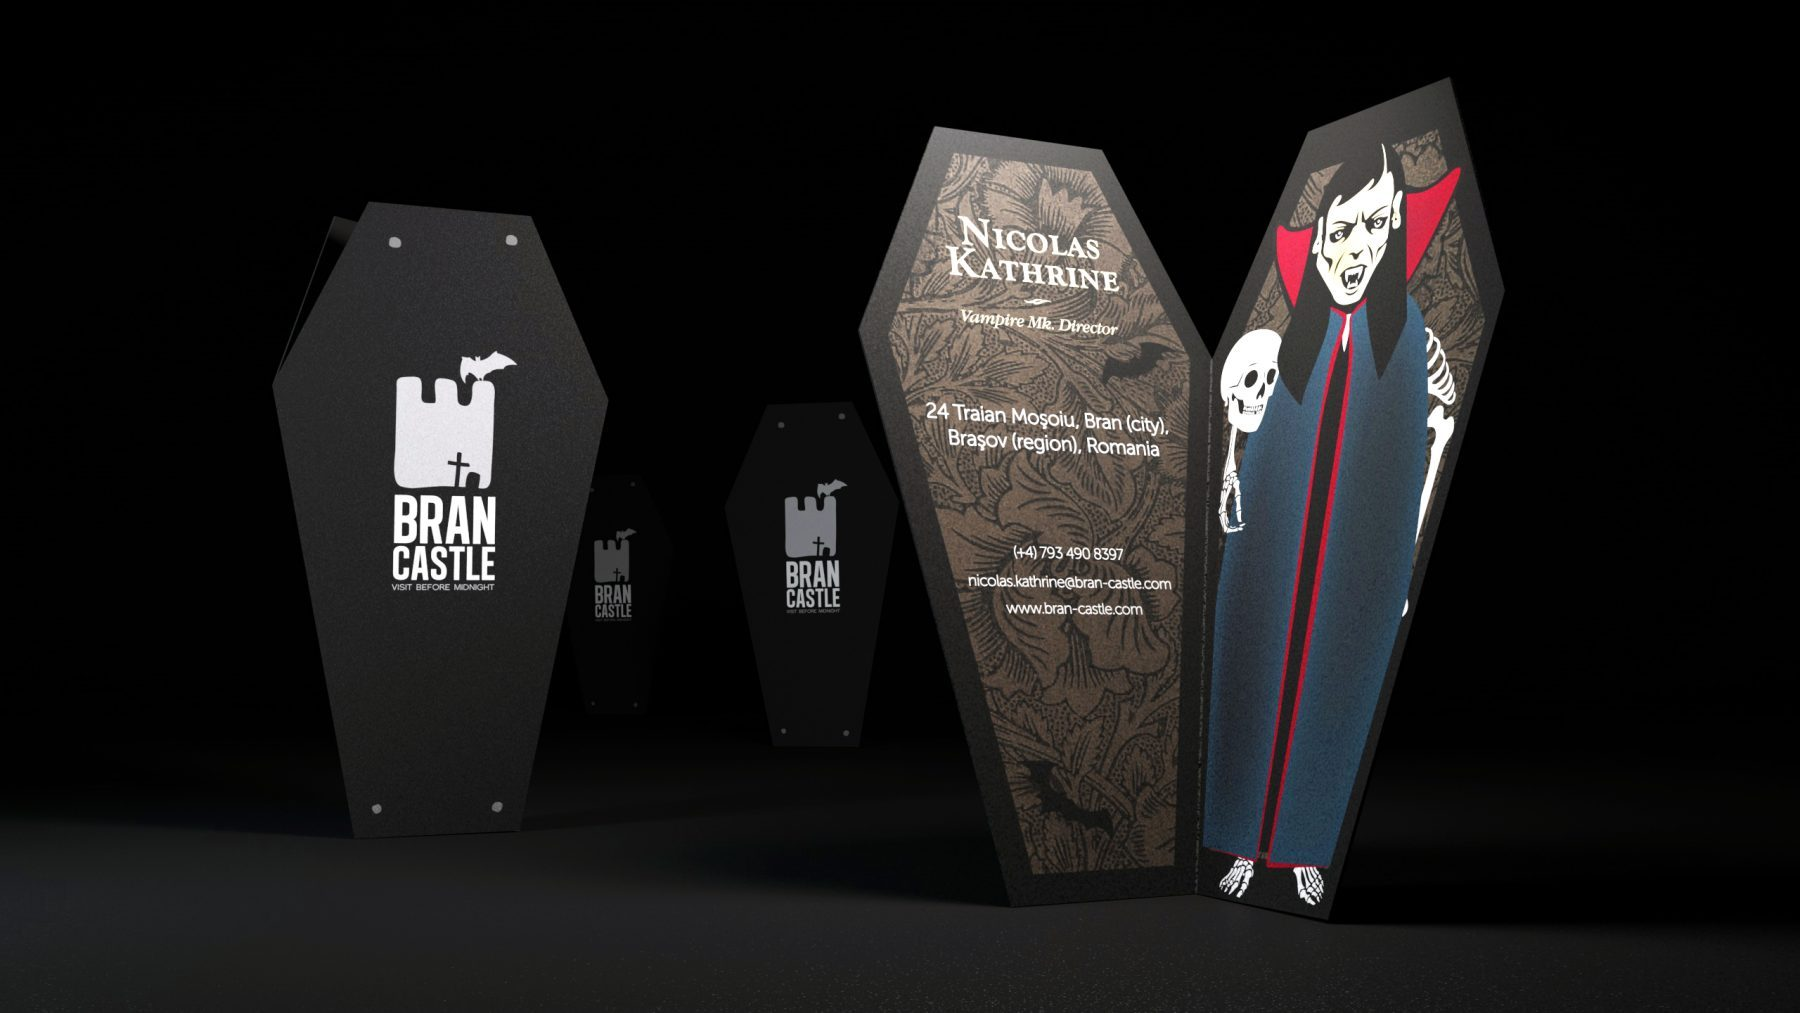 Coffin Business Card Design